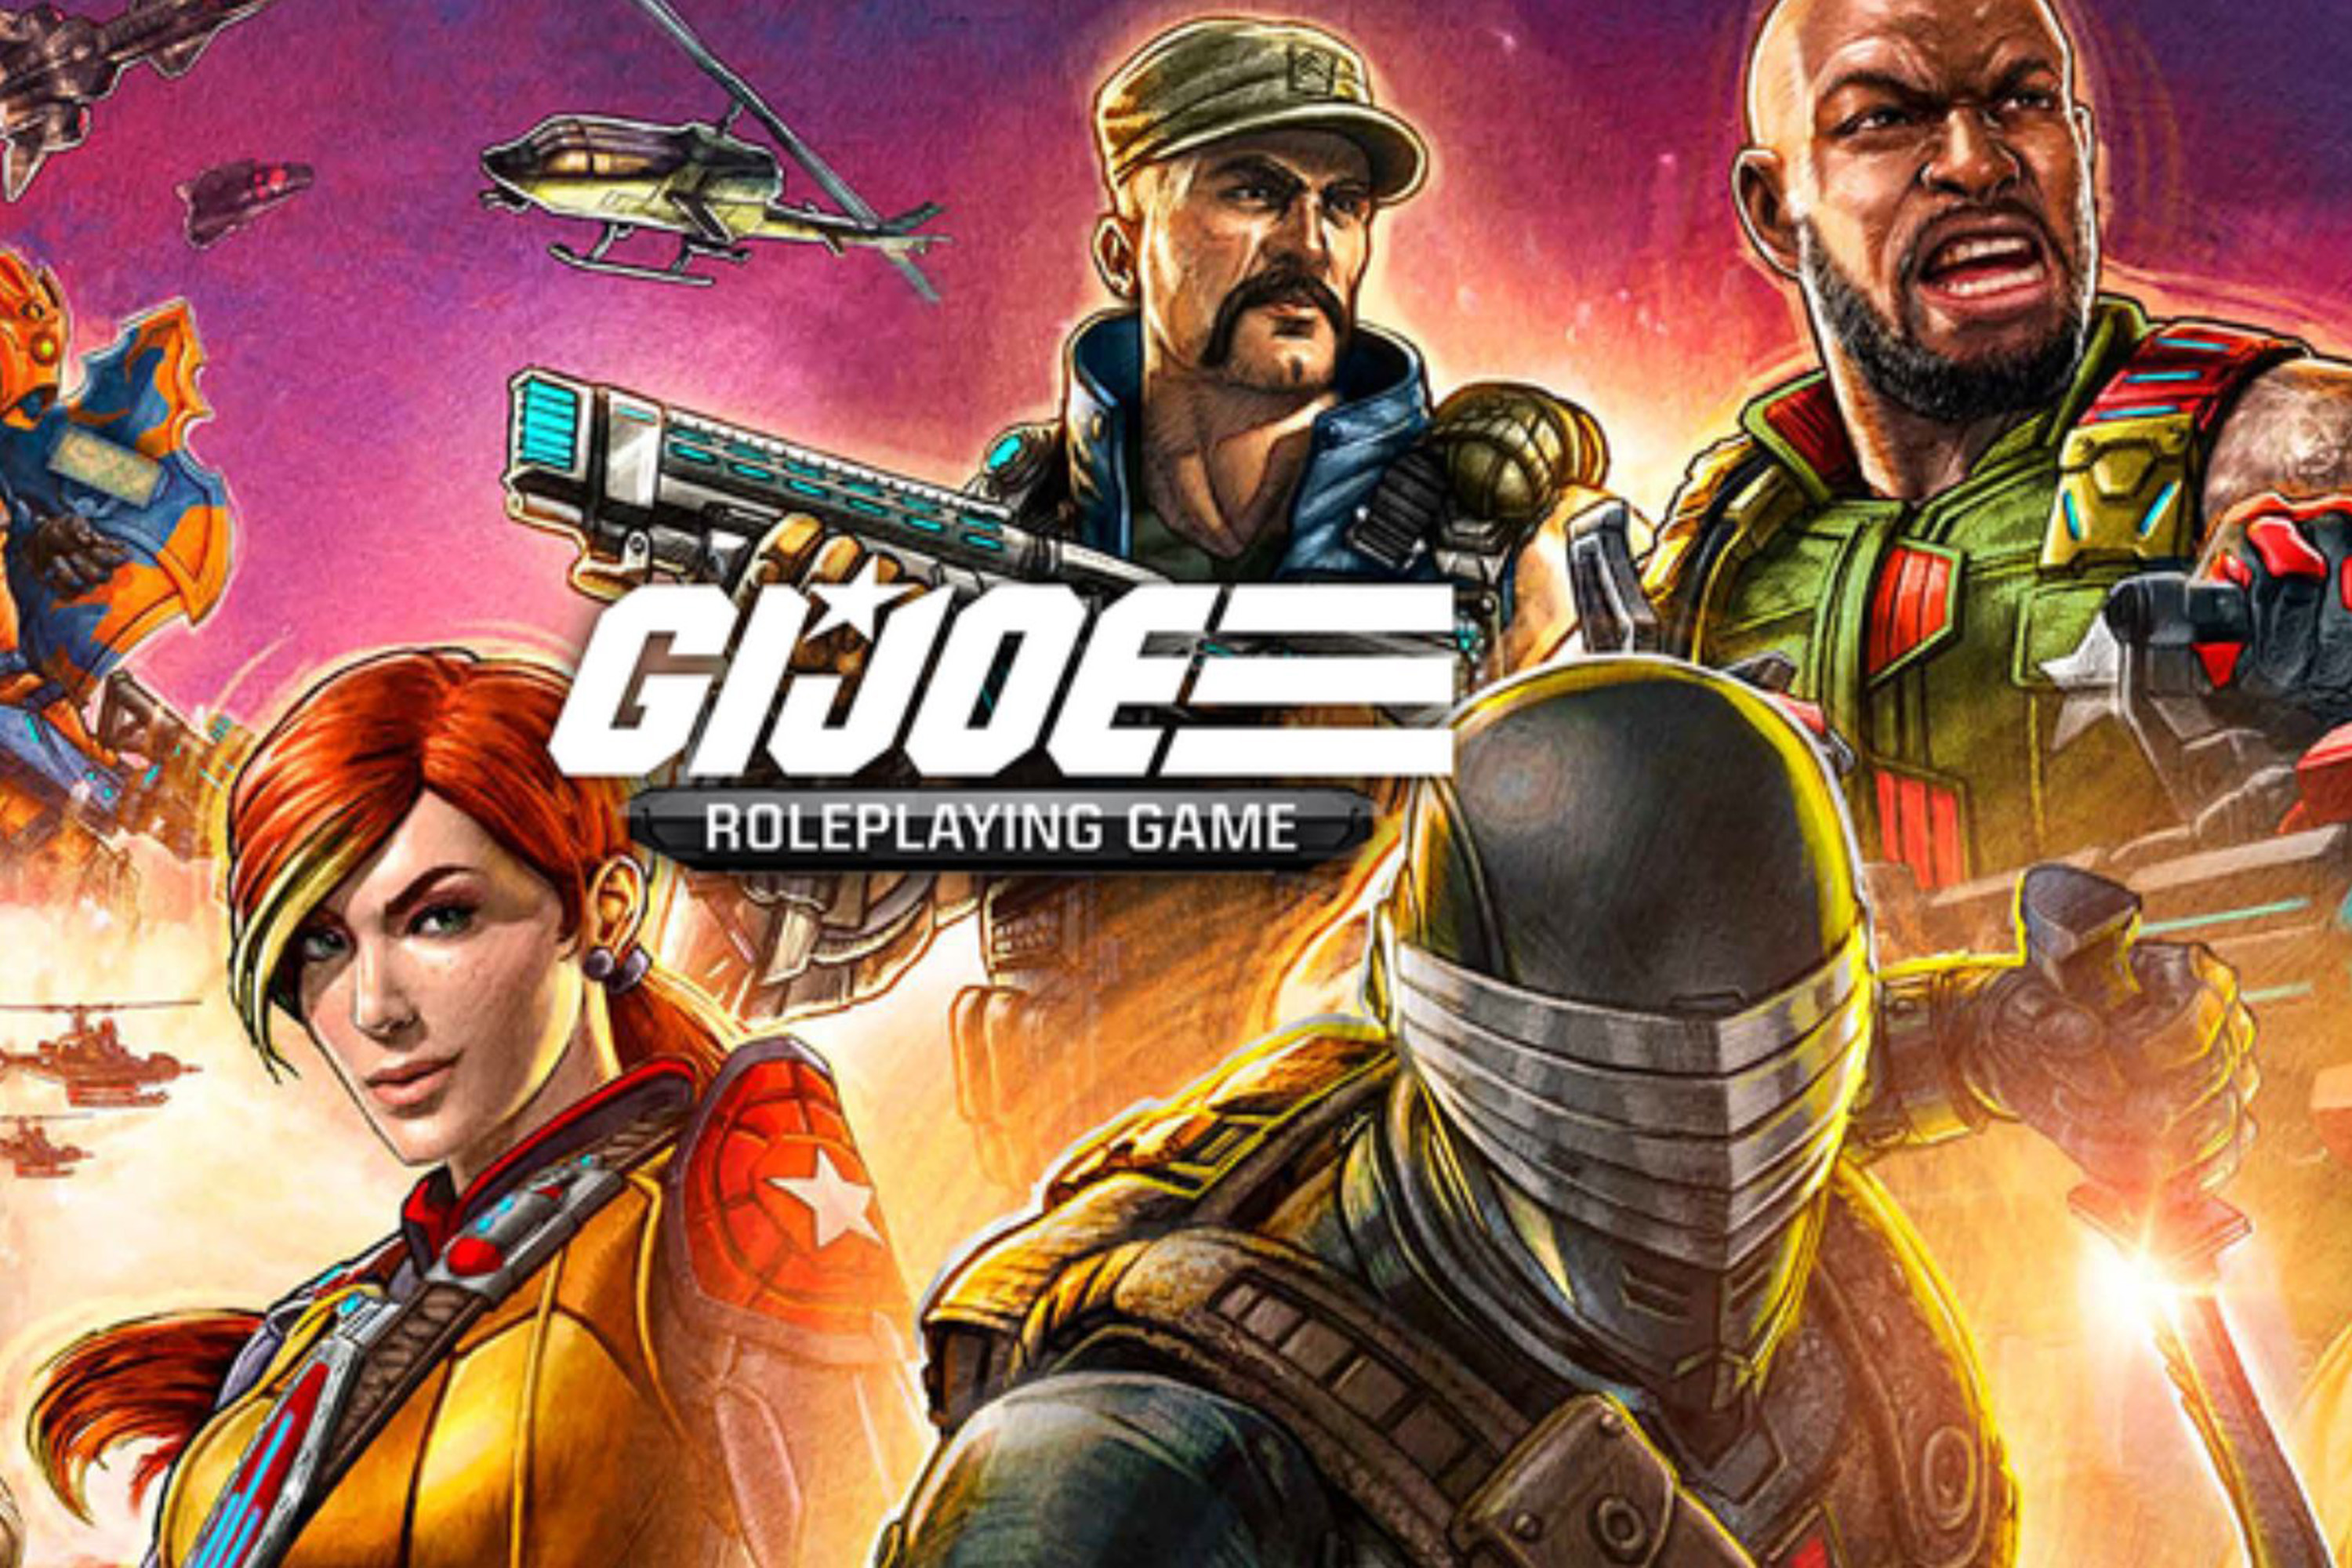 Art used for a game masters screen in G.I. Joe Roleplaying Game features iconic characters with a cartoonish art style.